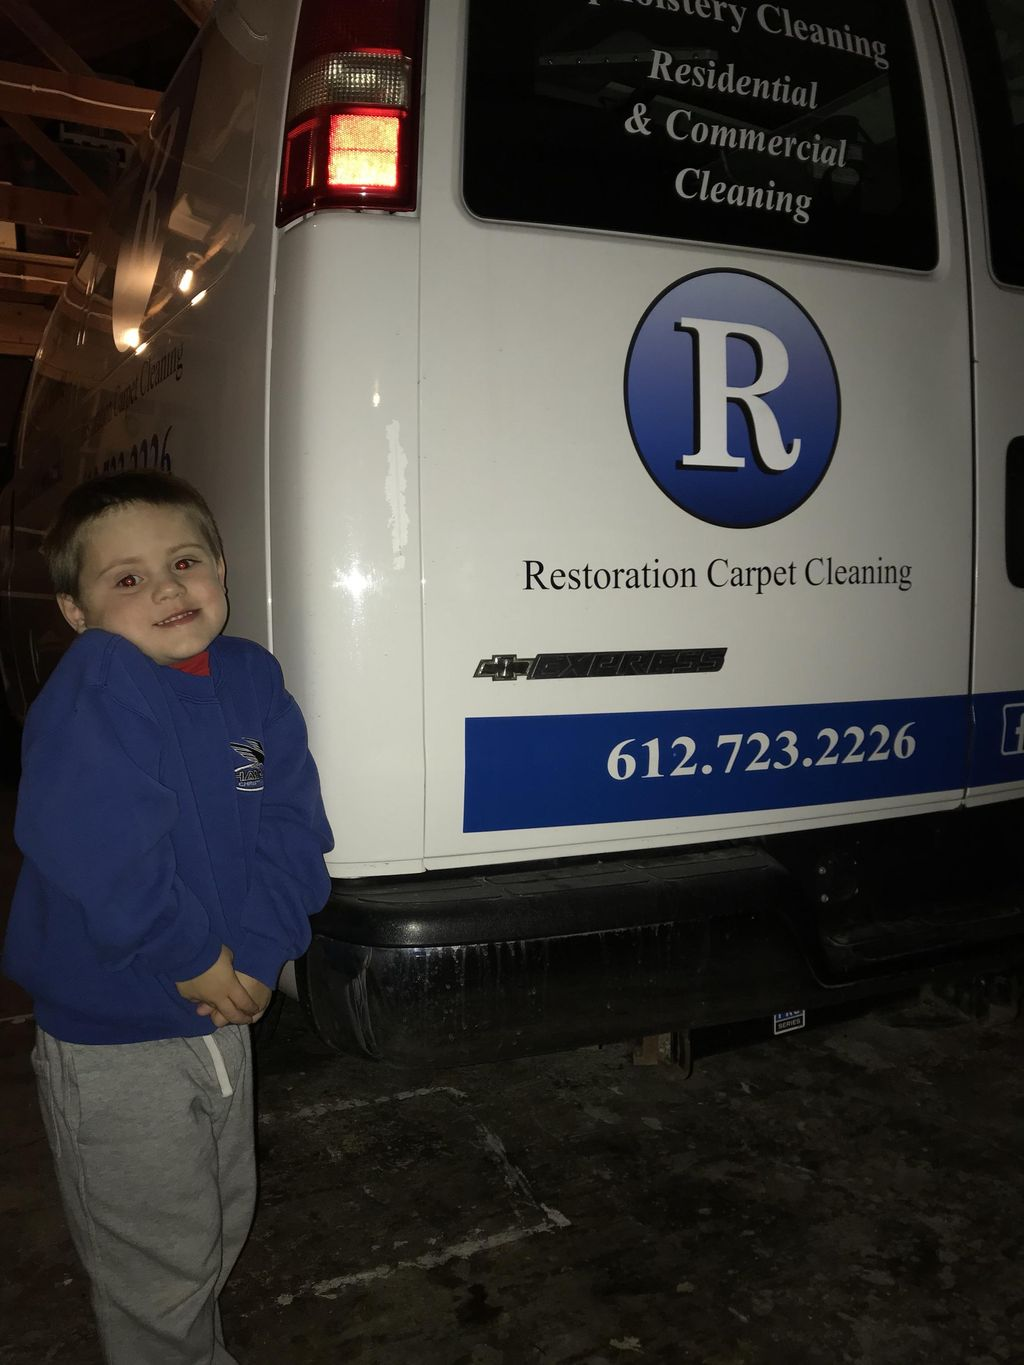 Restoration Carpet Cleaning